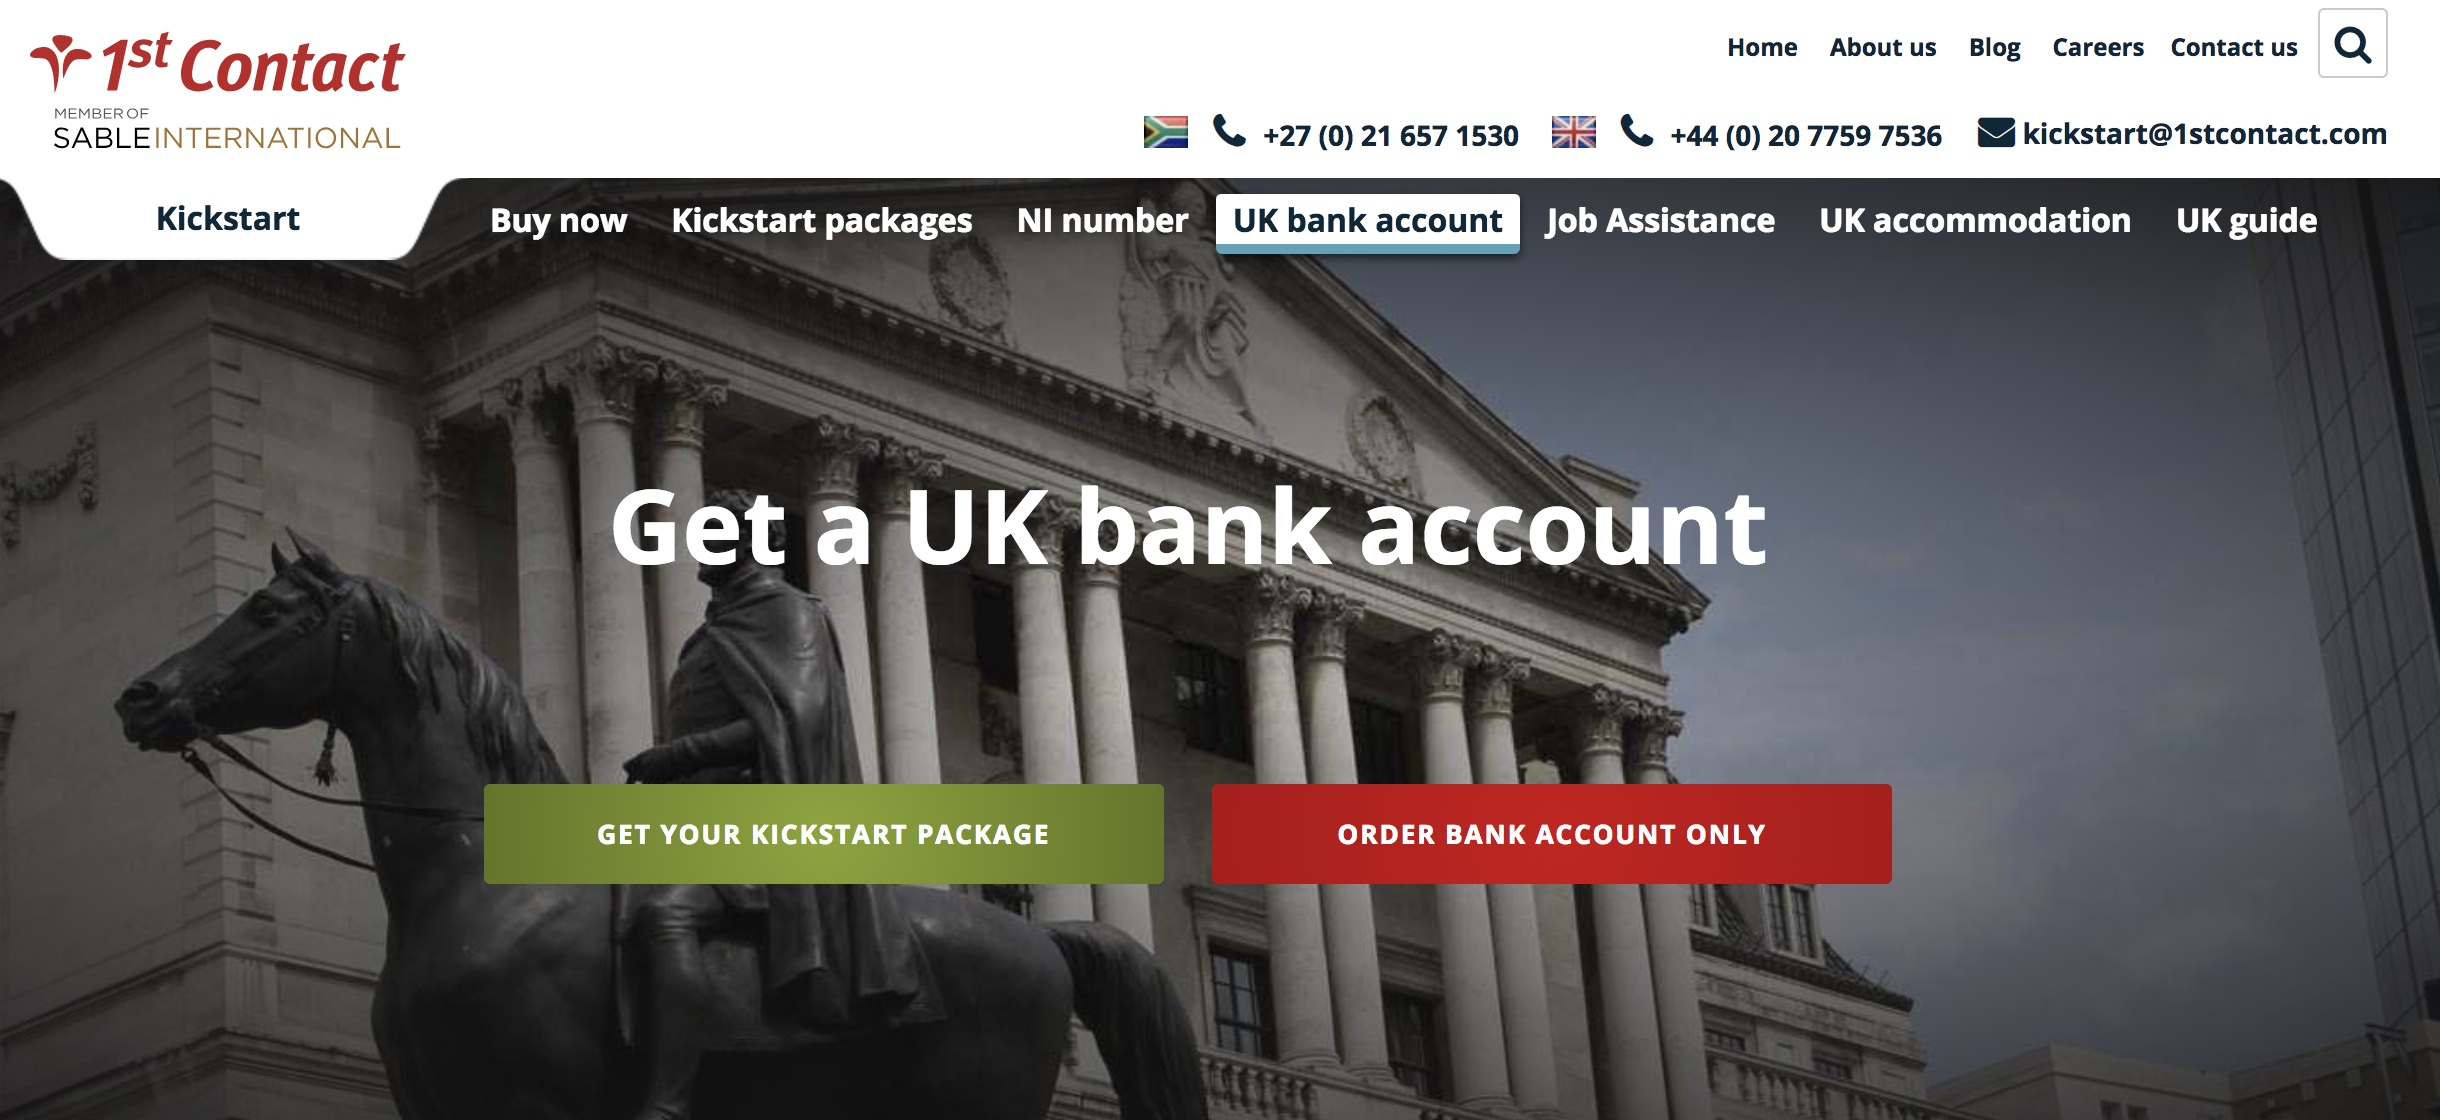 How to open a bank account online in the UK (even without proof of